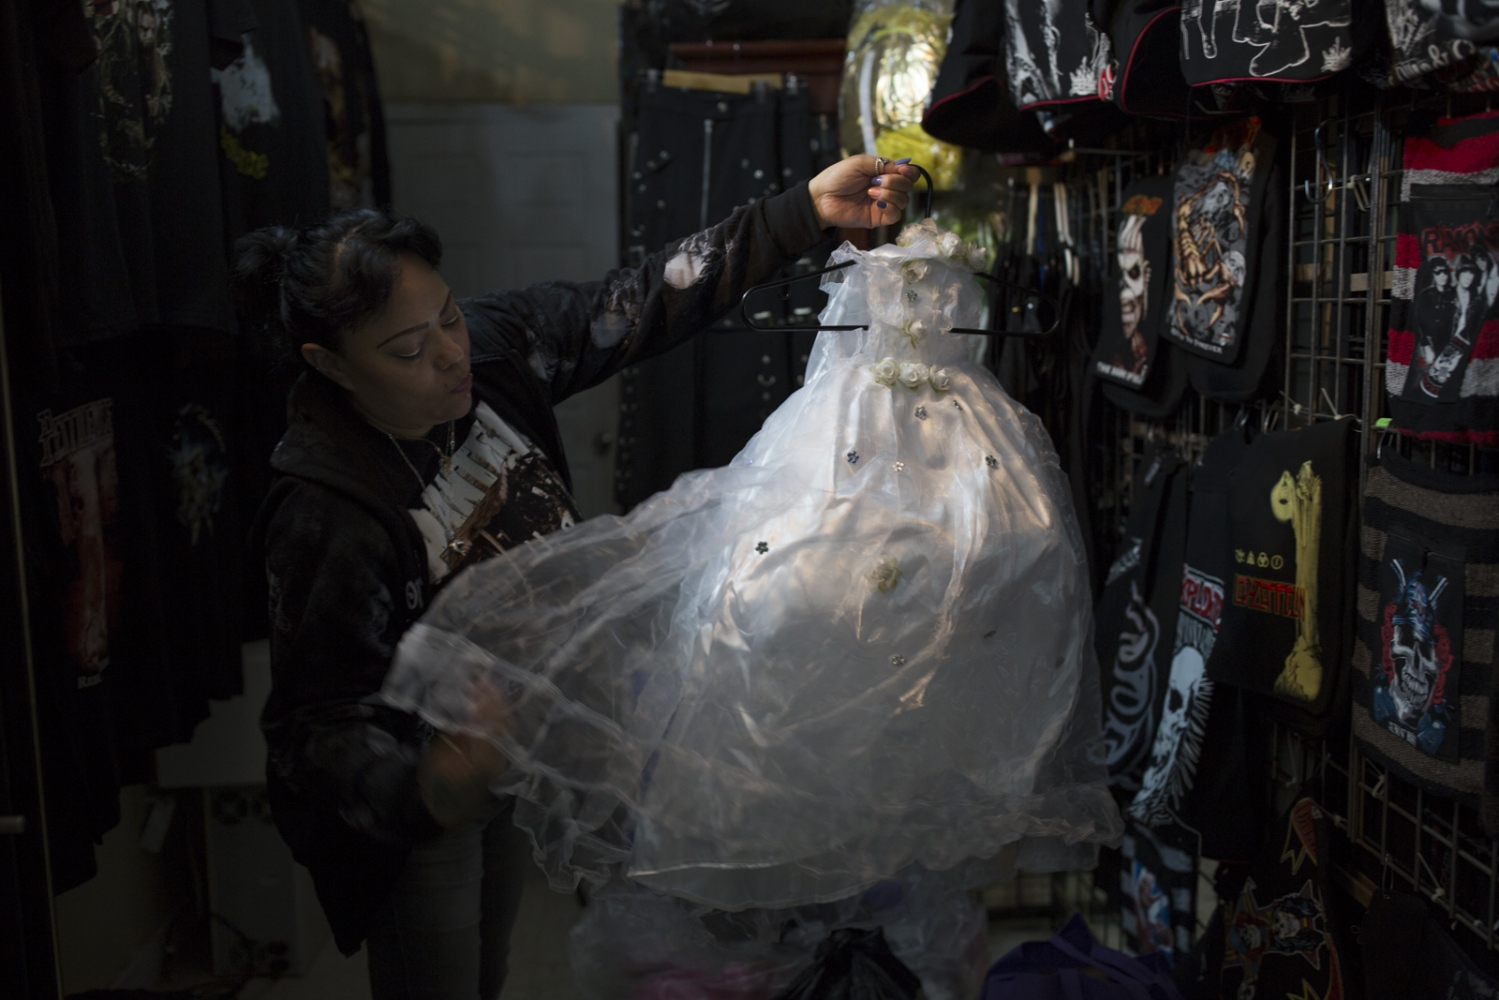 Guadalupe Mendoza unpacks Santa Muerte dresses to be sold at her store in Queens, New York.